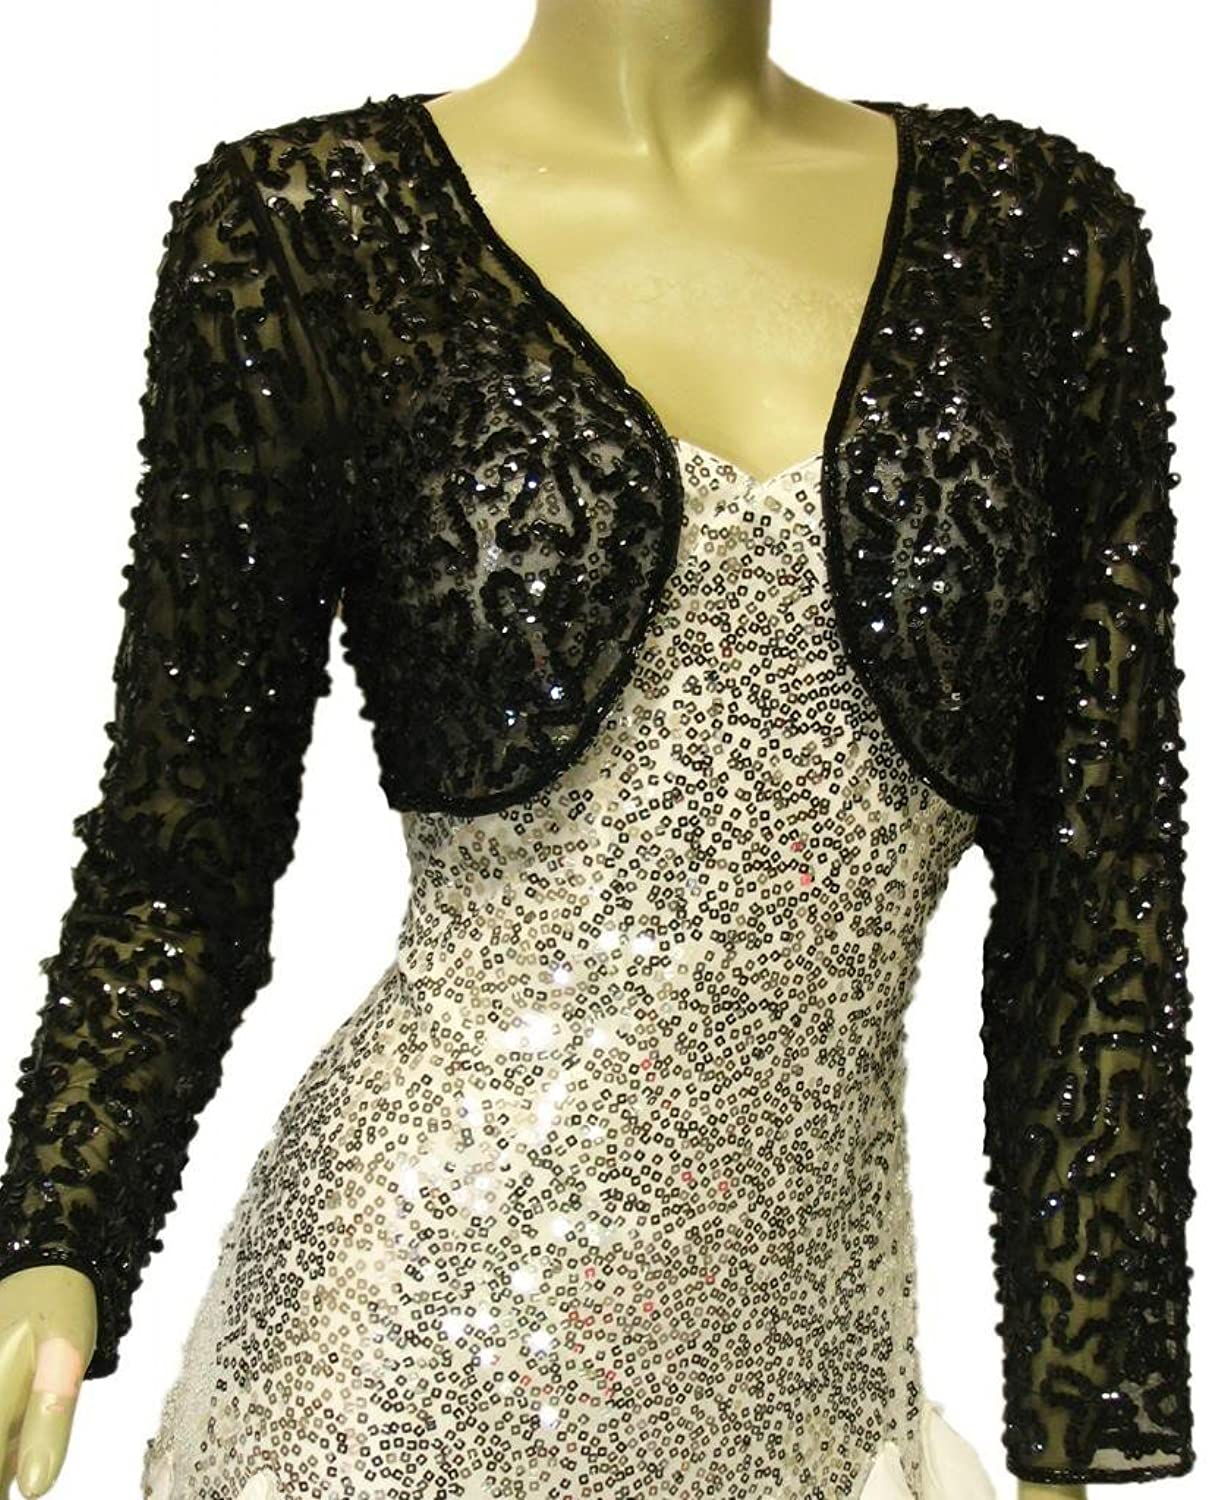 Gold, Silver, Sequined and Beaded Bolero Jackets and Shrugs